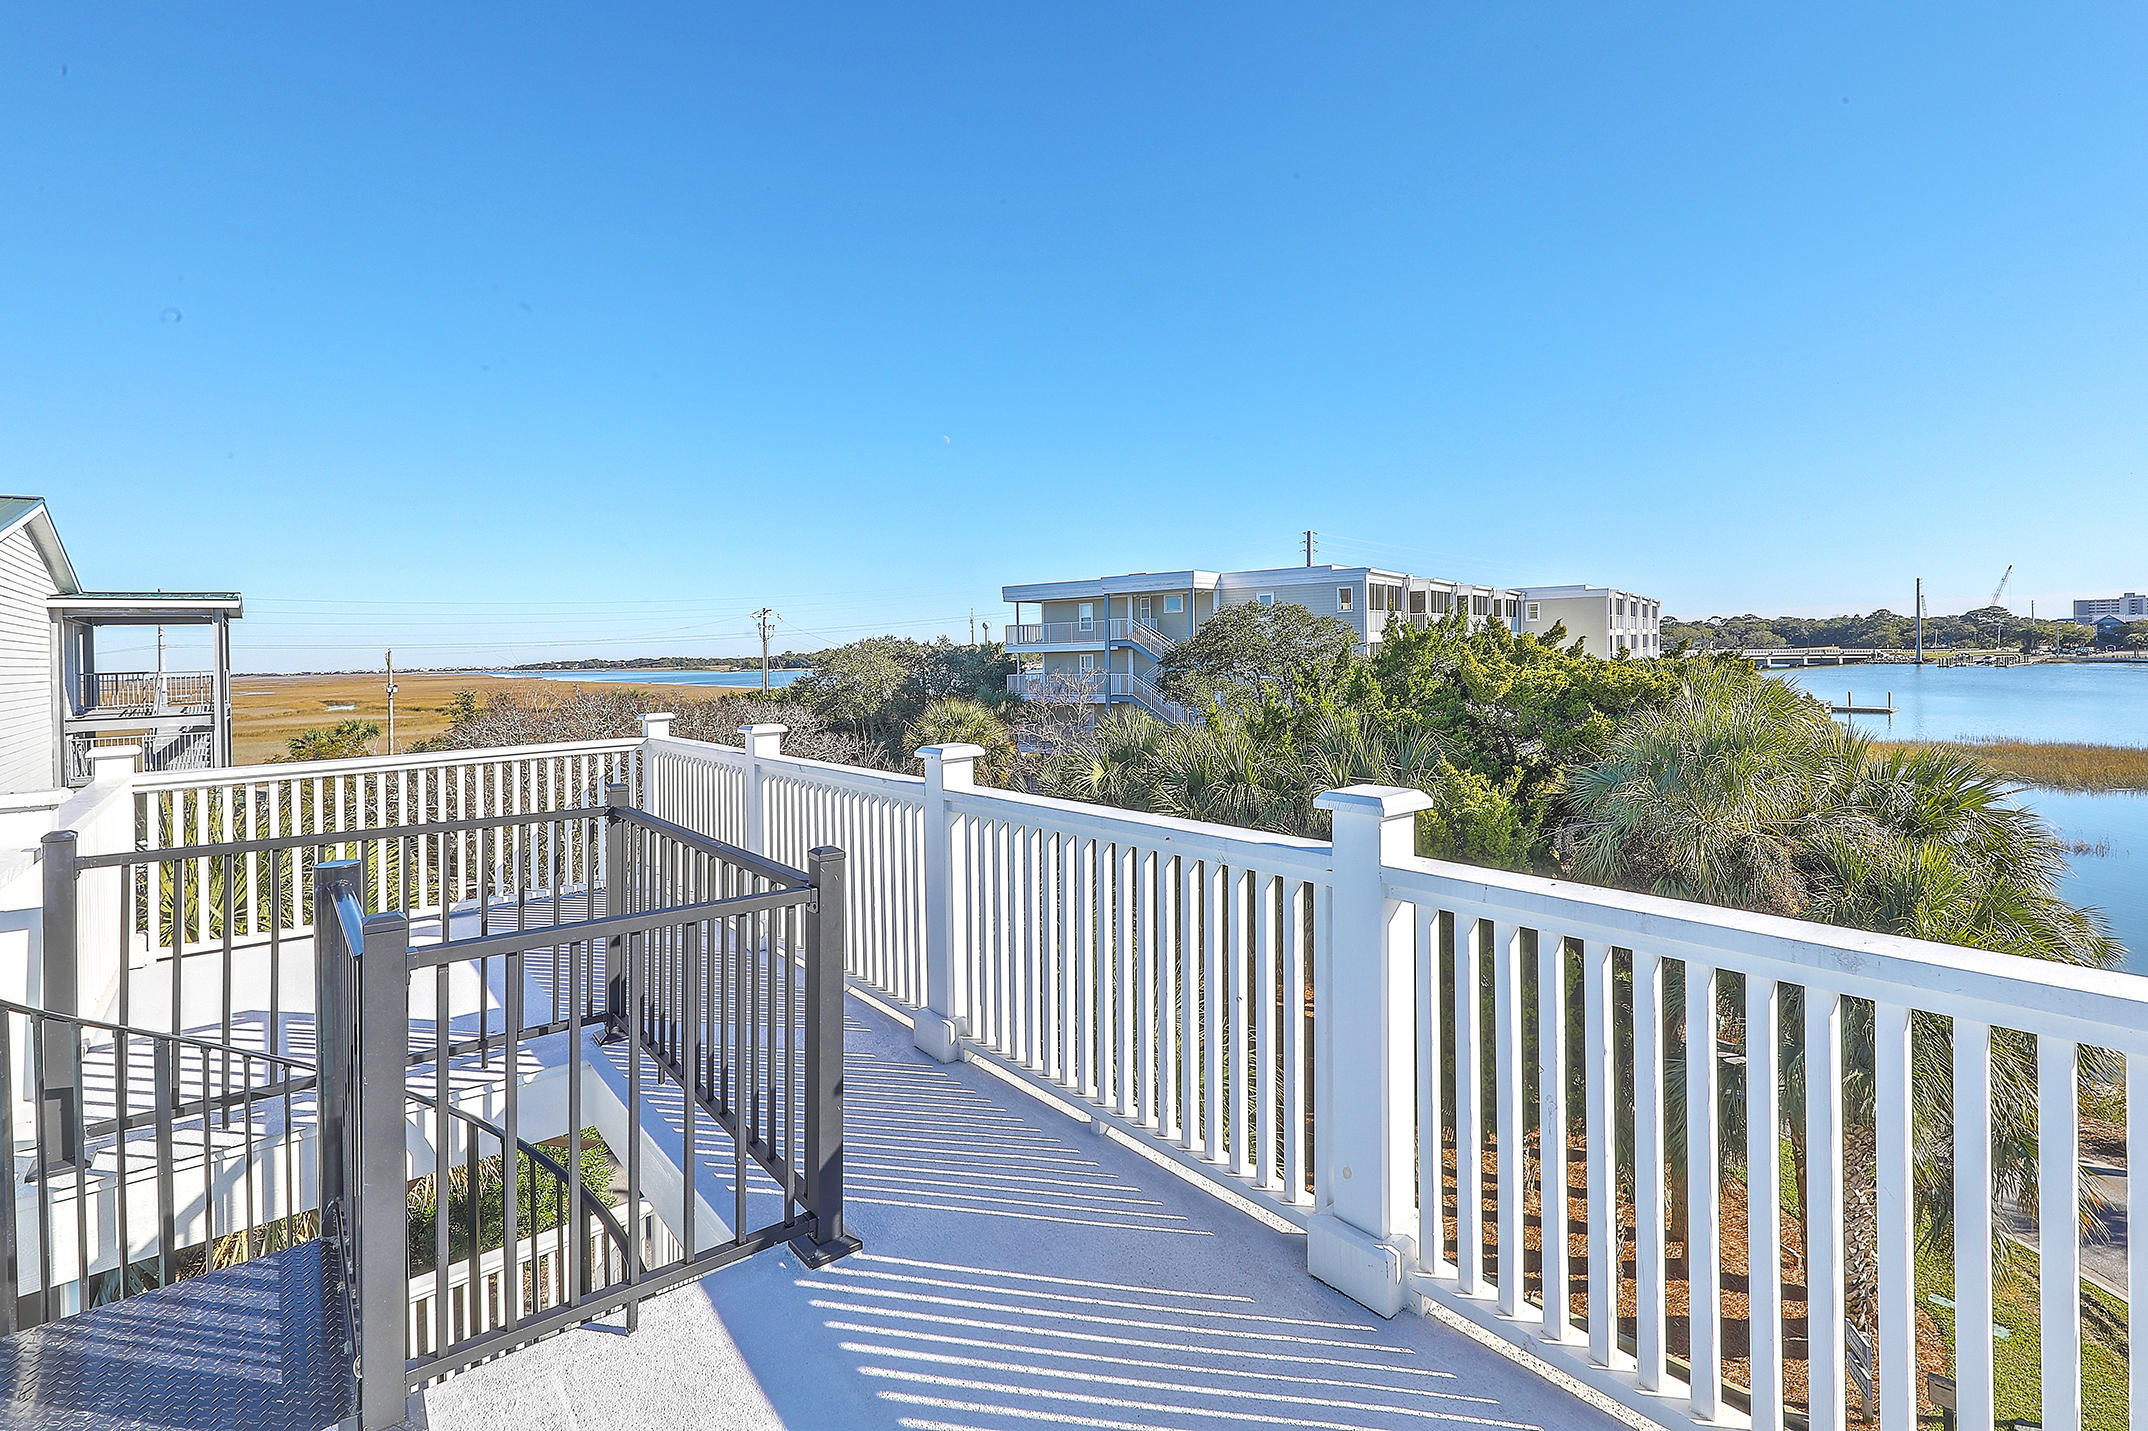 Mariners Cay Homes For Sale - 1002 Mariners Cay, Folly Beach, SC - 9